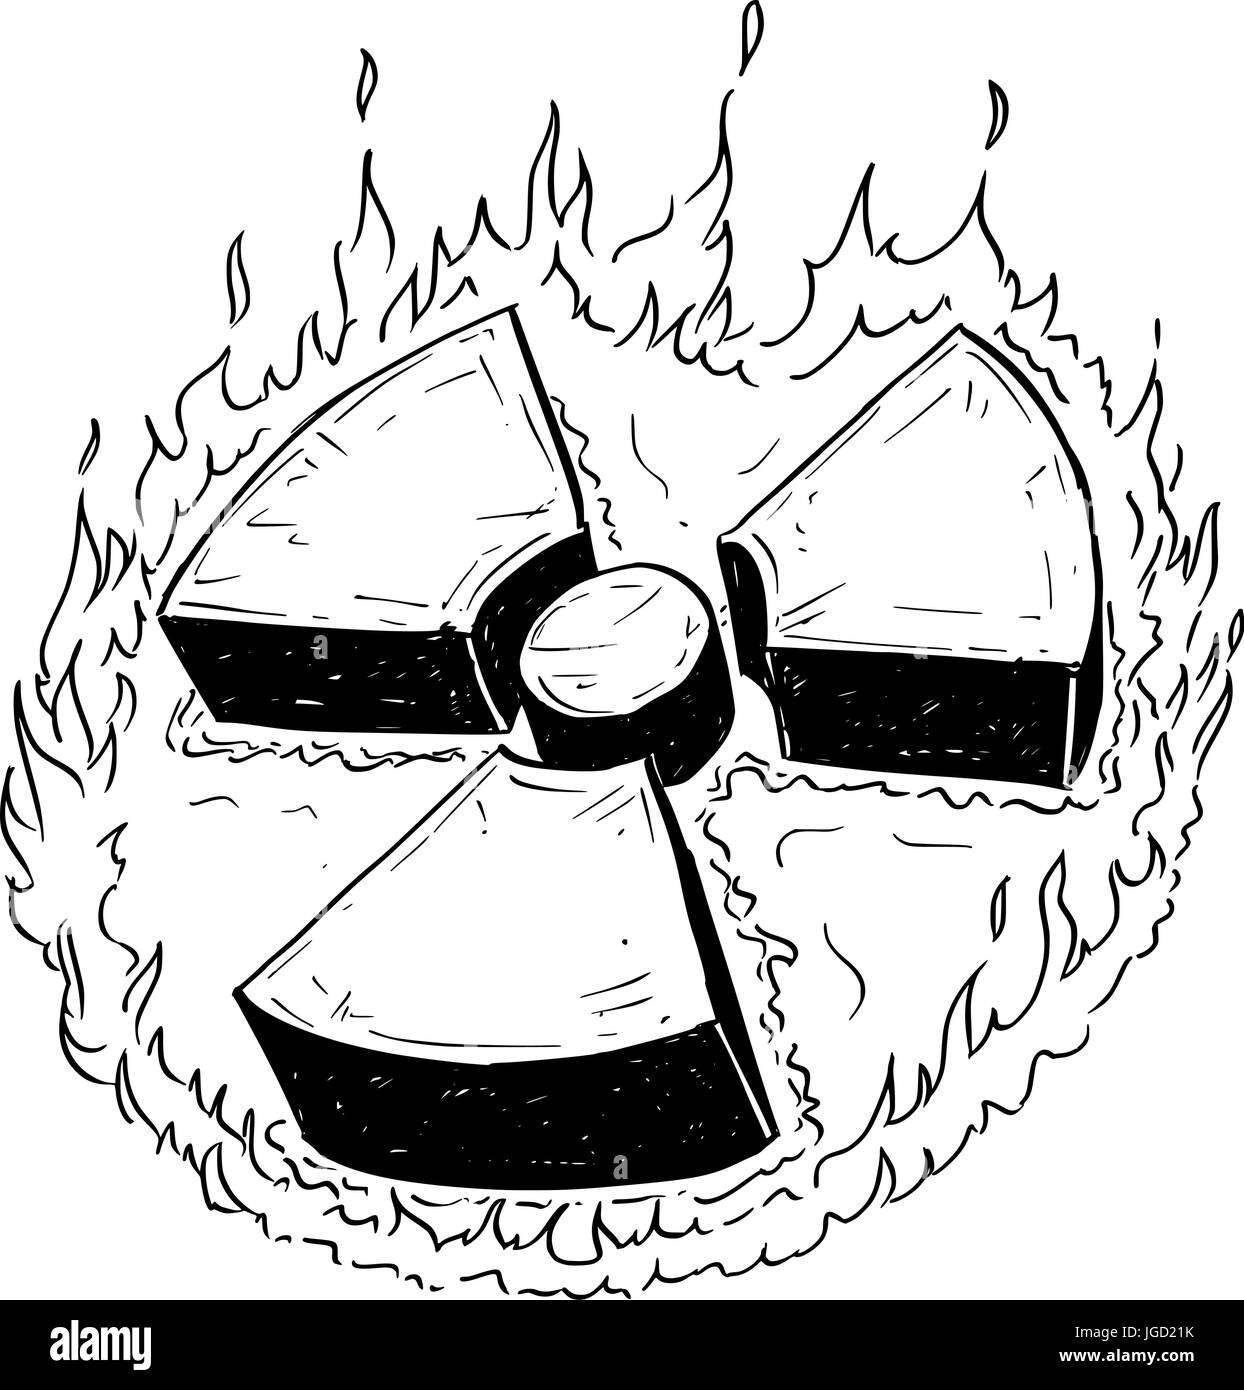 Vector doodle hand drawing illustration of nuclear radiation symbol. Stock Vector